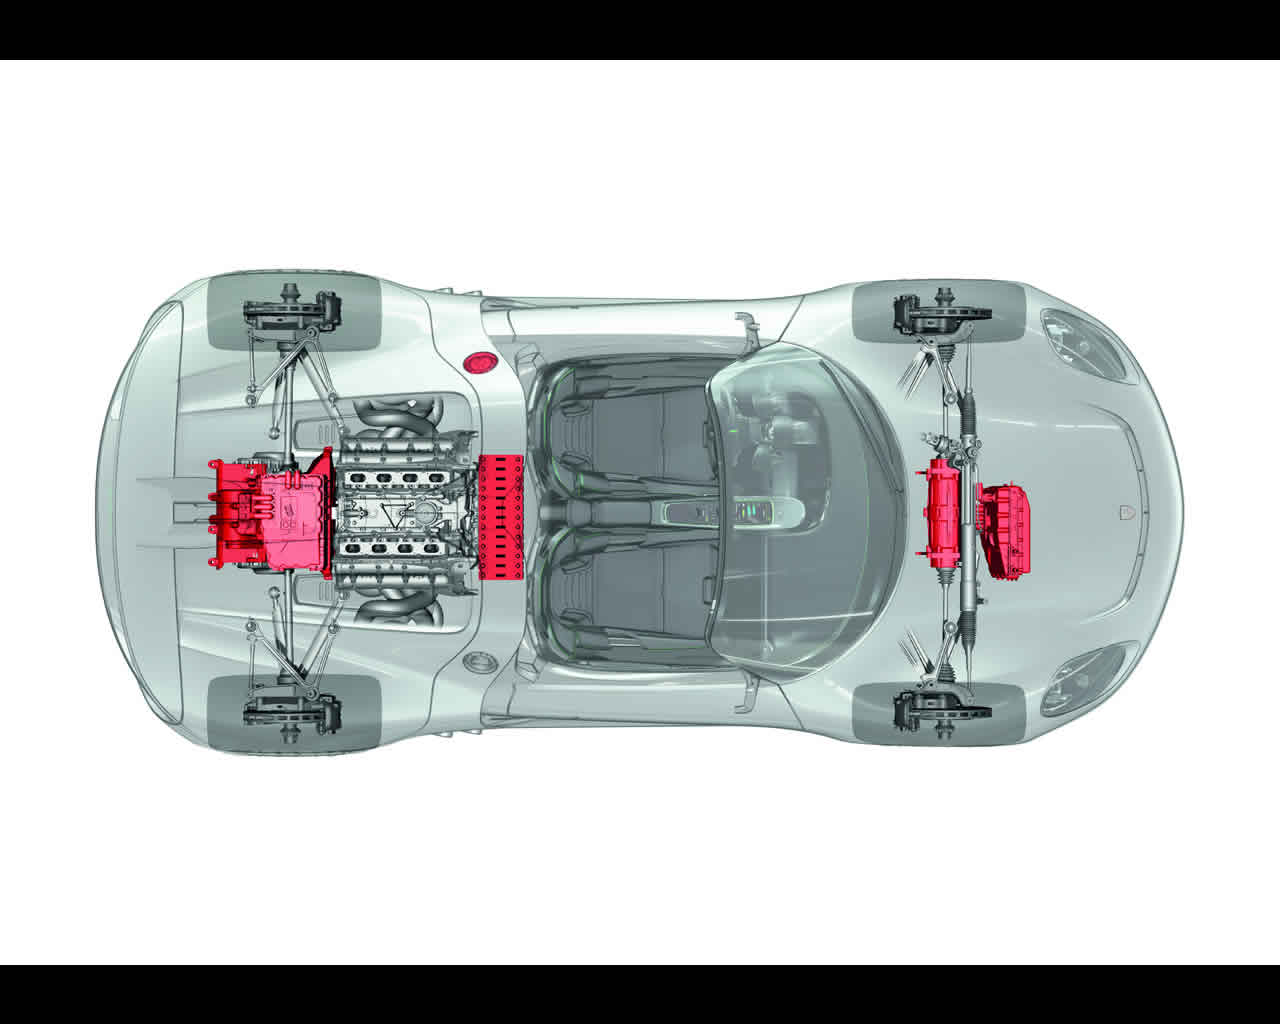 Porsche 918 Engine Diagram Simple Wiring Schema Plug In Hybrid High Performance Spyder 2010 Nissan Leaf